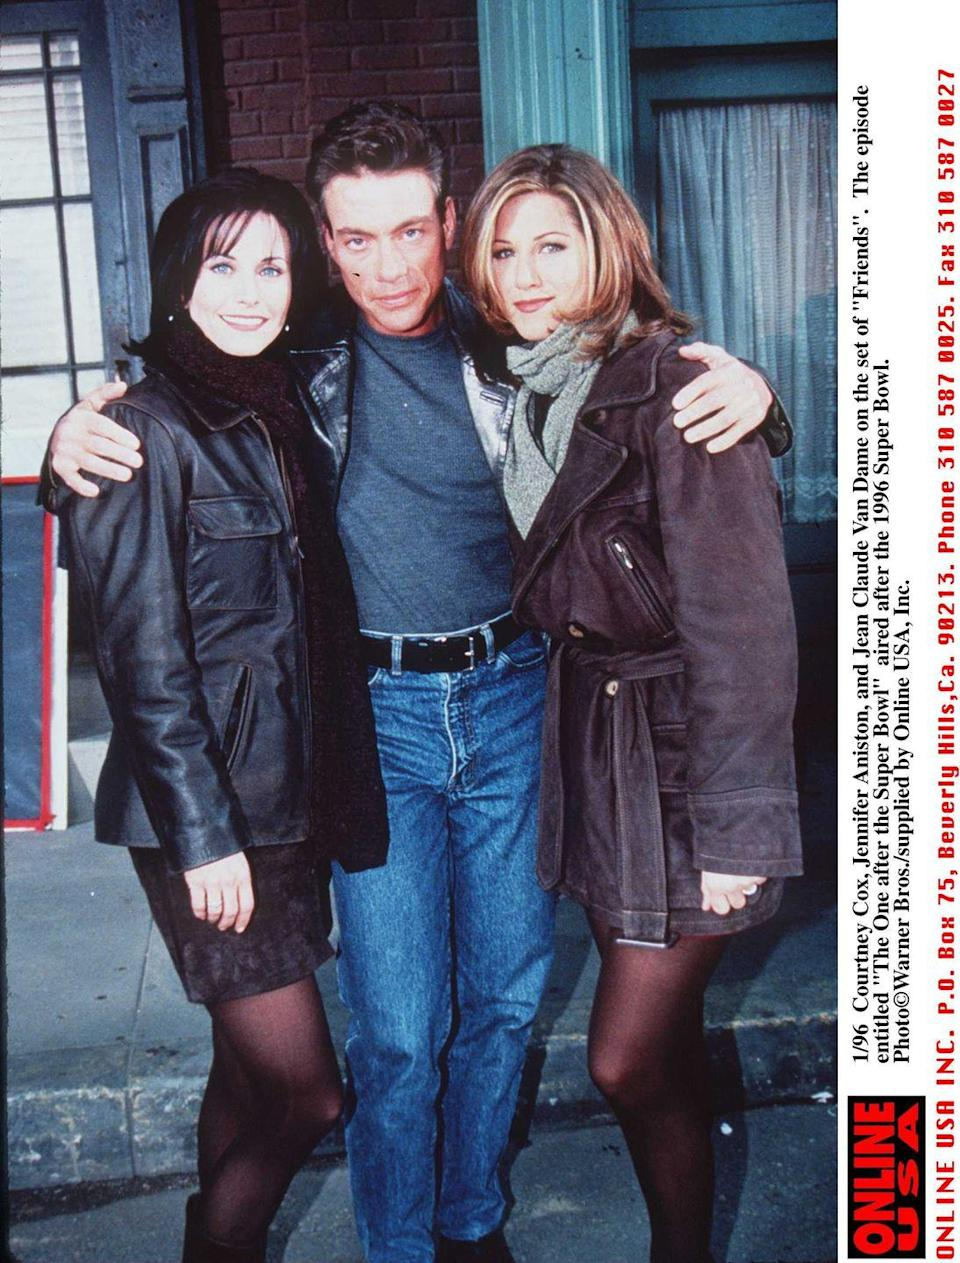 <p>Appearing as himself in season 2, Jean-Claude Van Damme's part involves him being recognized by Monica while filming a movie nearby, resulting in the two going on a date, as you might expect.</p>